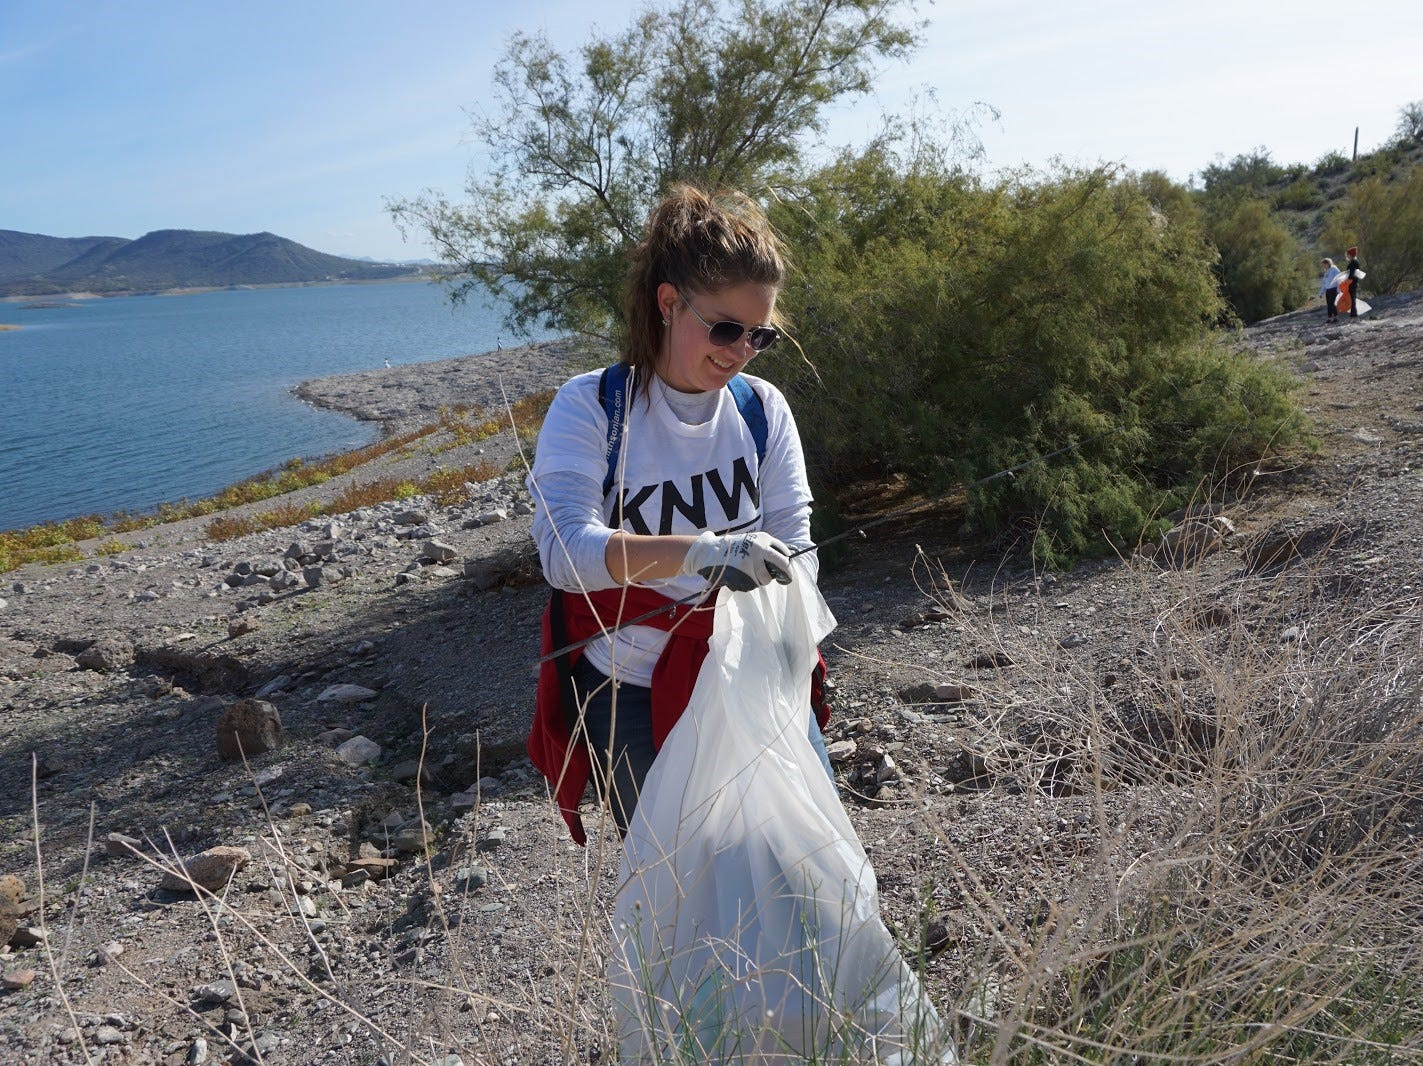 A Keep Nature Wild volunteer wears the free shirt handed out to the first 500 volunteers at a cleanup at Lake Pleasant Park on Nov. 23, 2018.